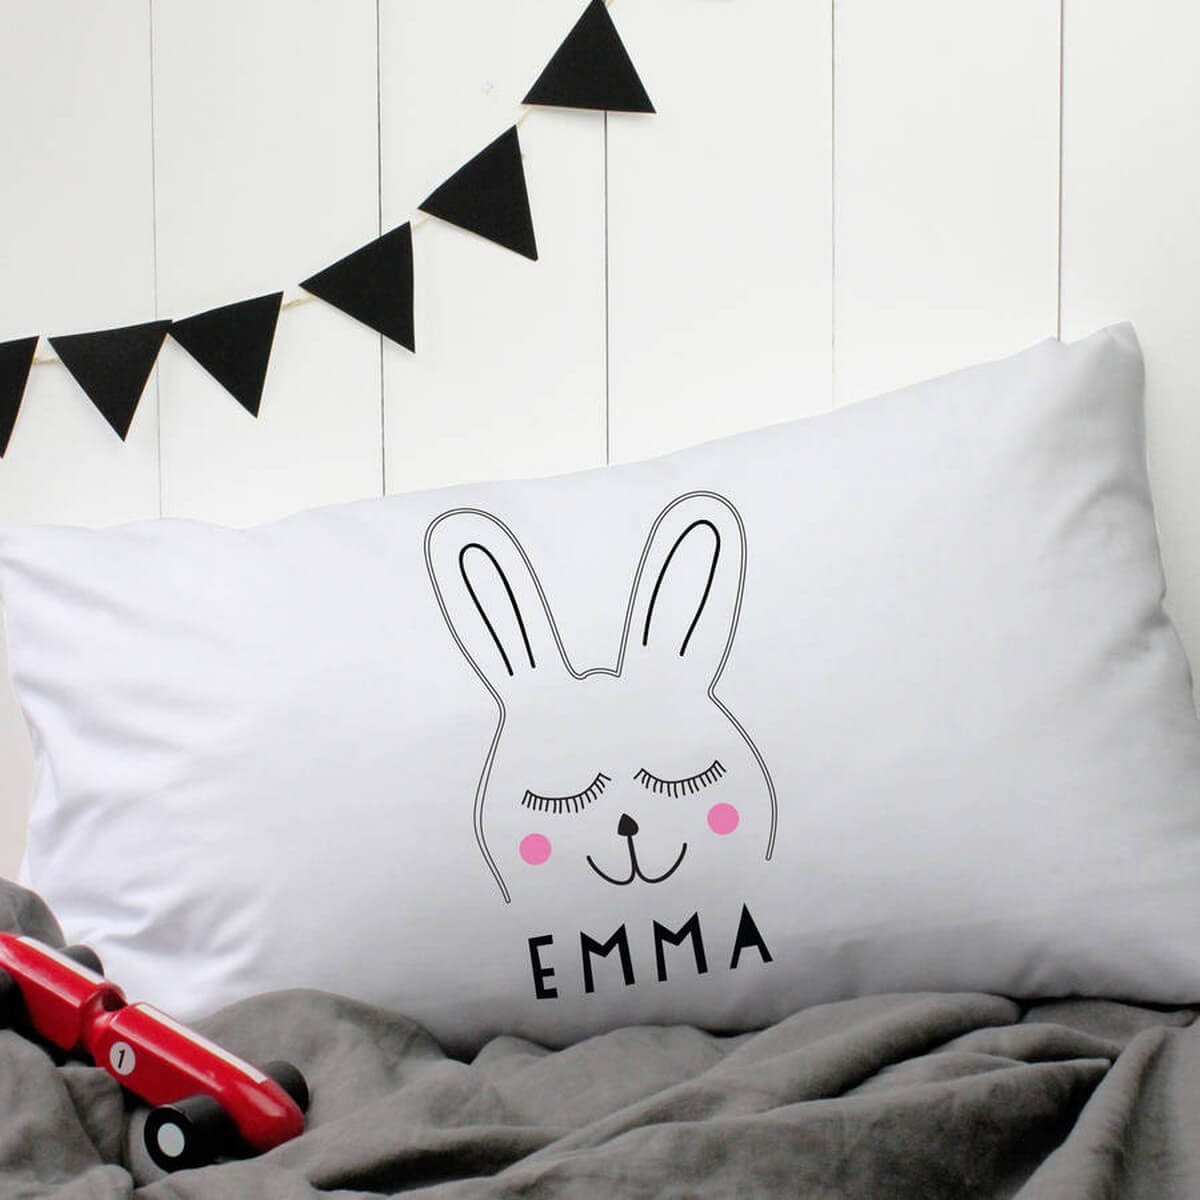 Beautifully decorated pillows add a cherry on top to any room of the house. It doesn't matter if you actually intend to sleep on the pillow or just have it as a décor, plain white pillows are out.